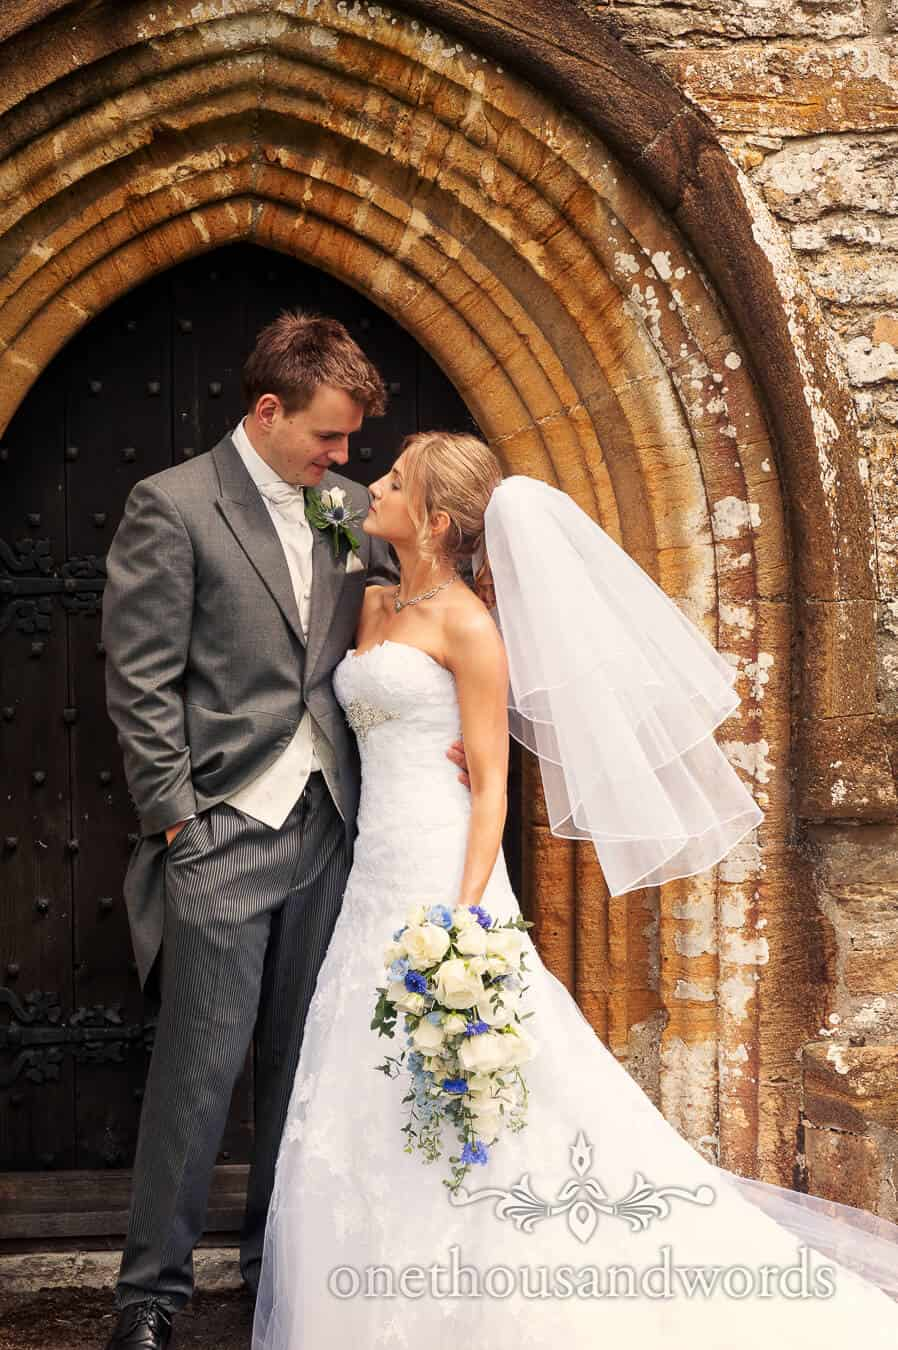 Bride and groom portrait outside country church doorway